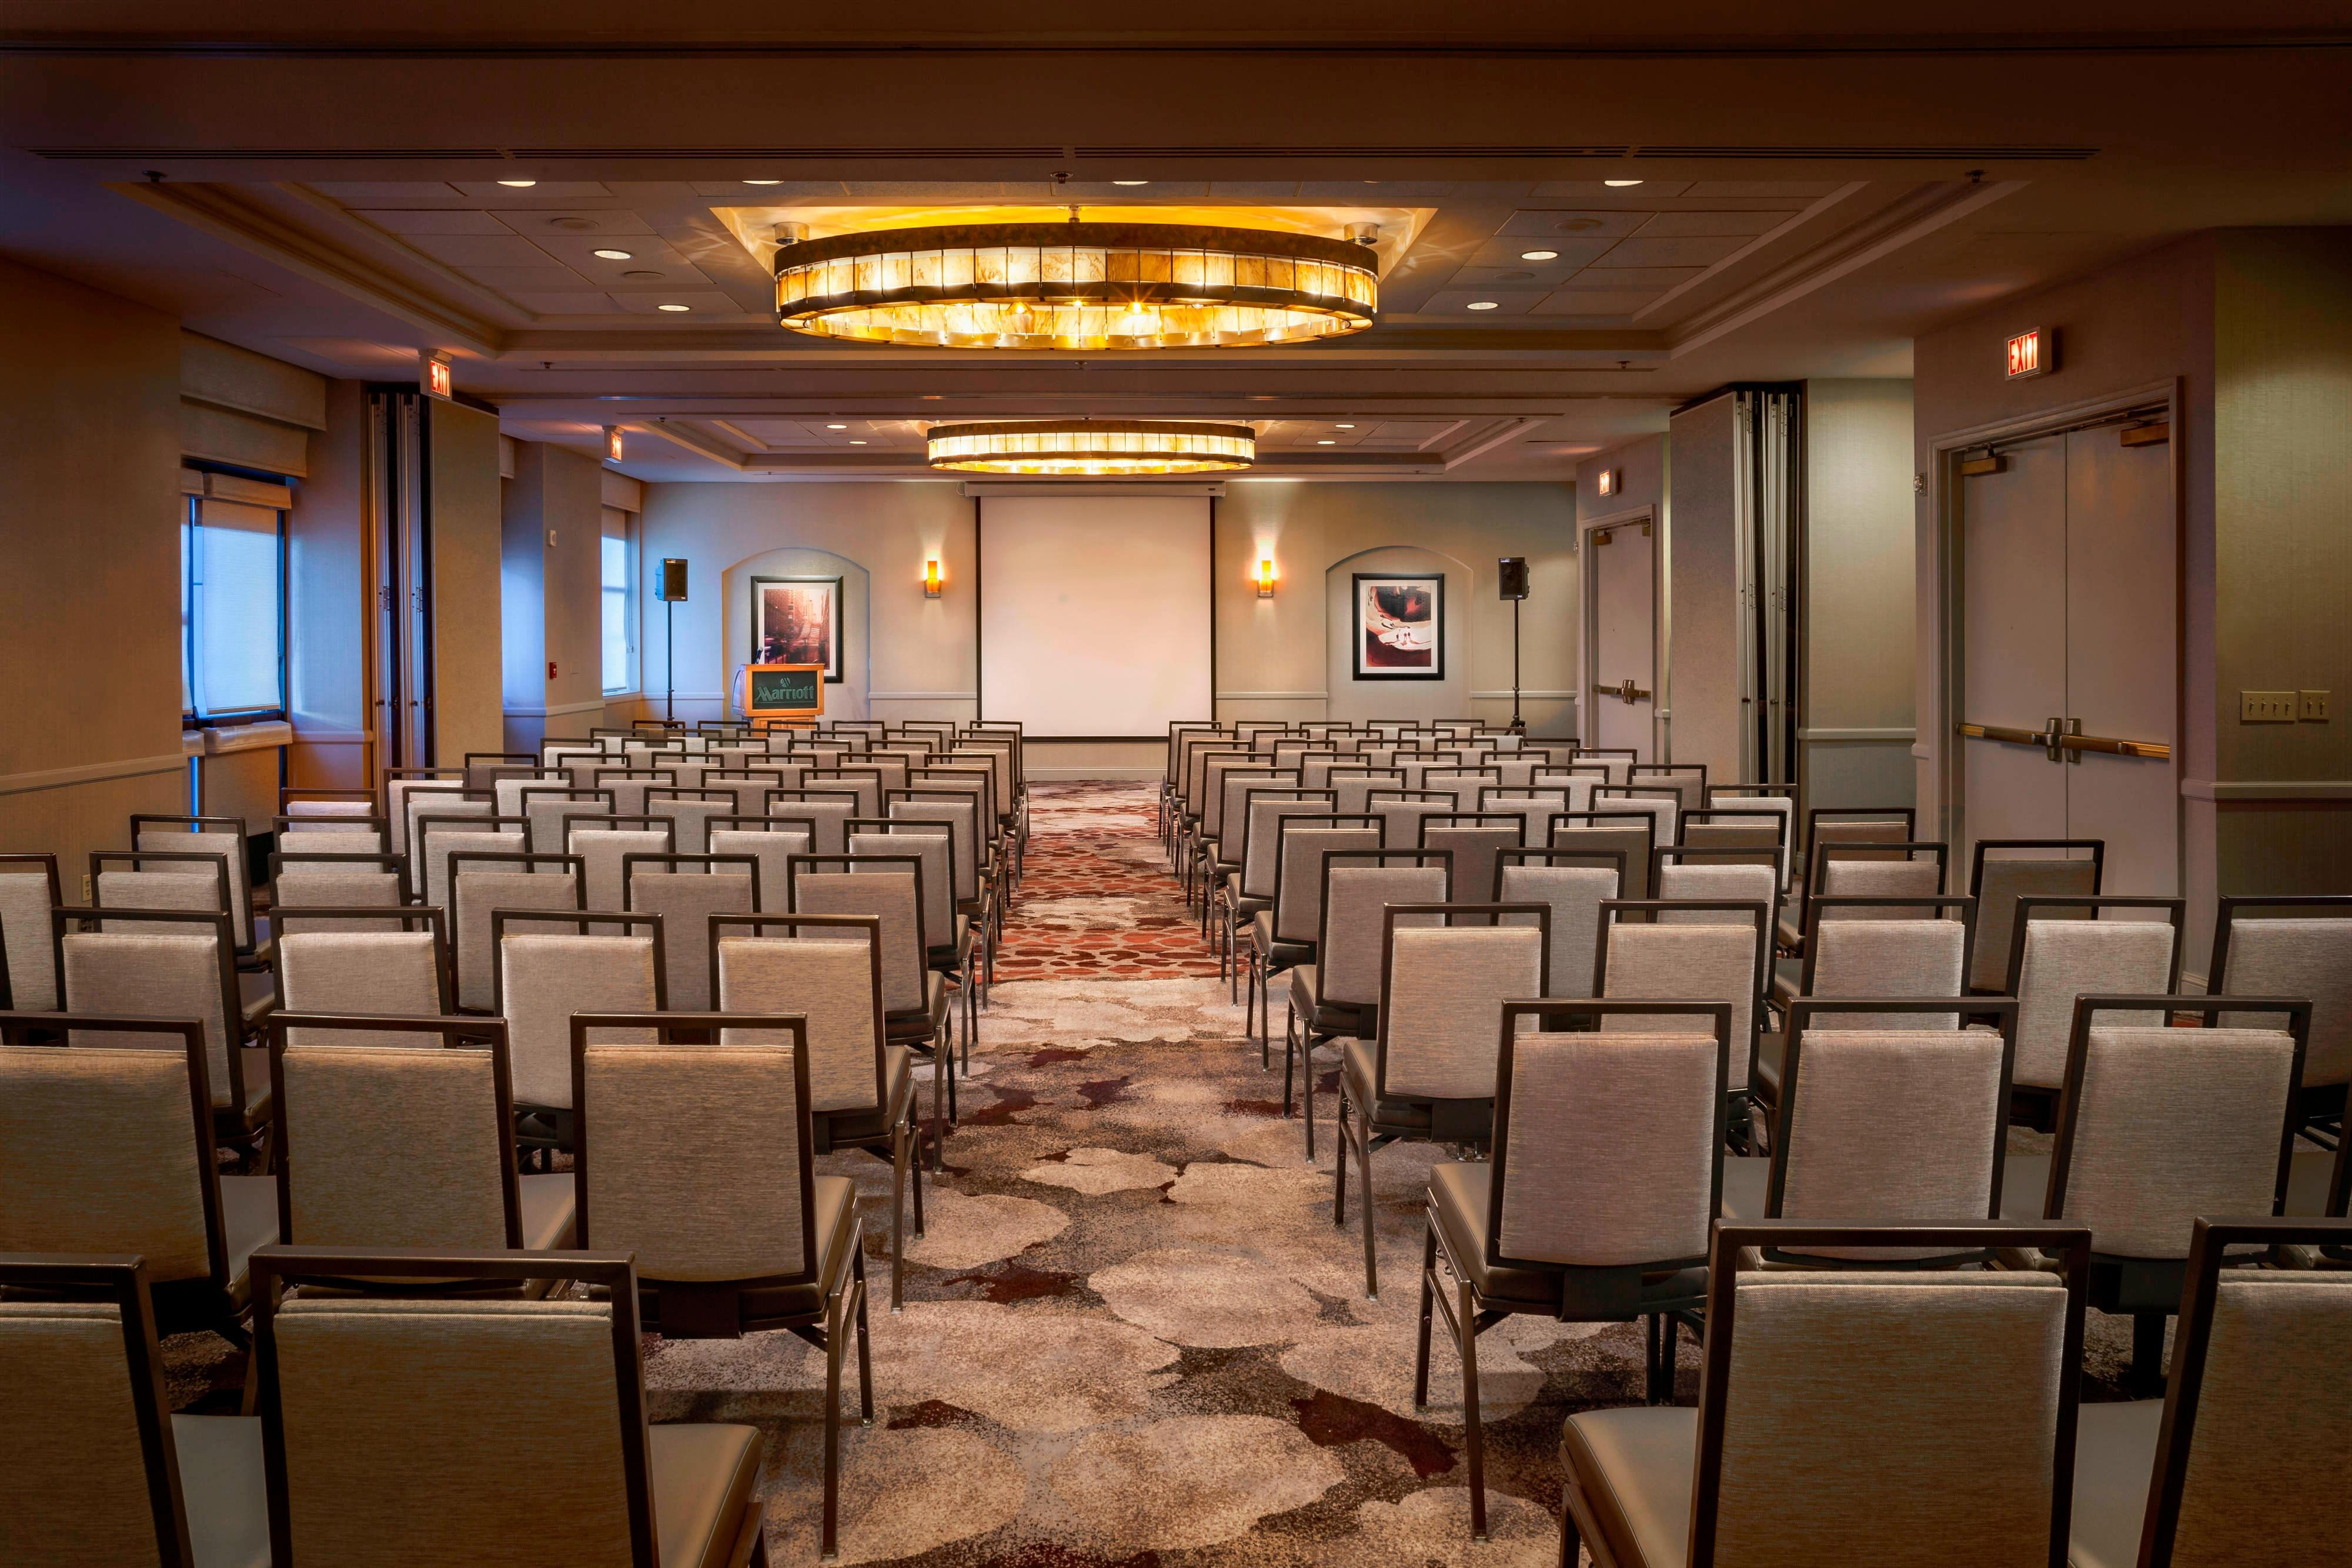 Lincolnshire Meeting Room at Chicago Marriott Suites Deerfield